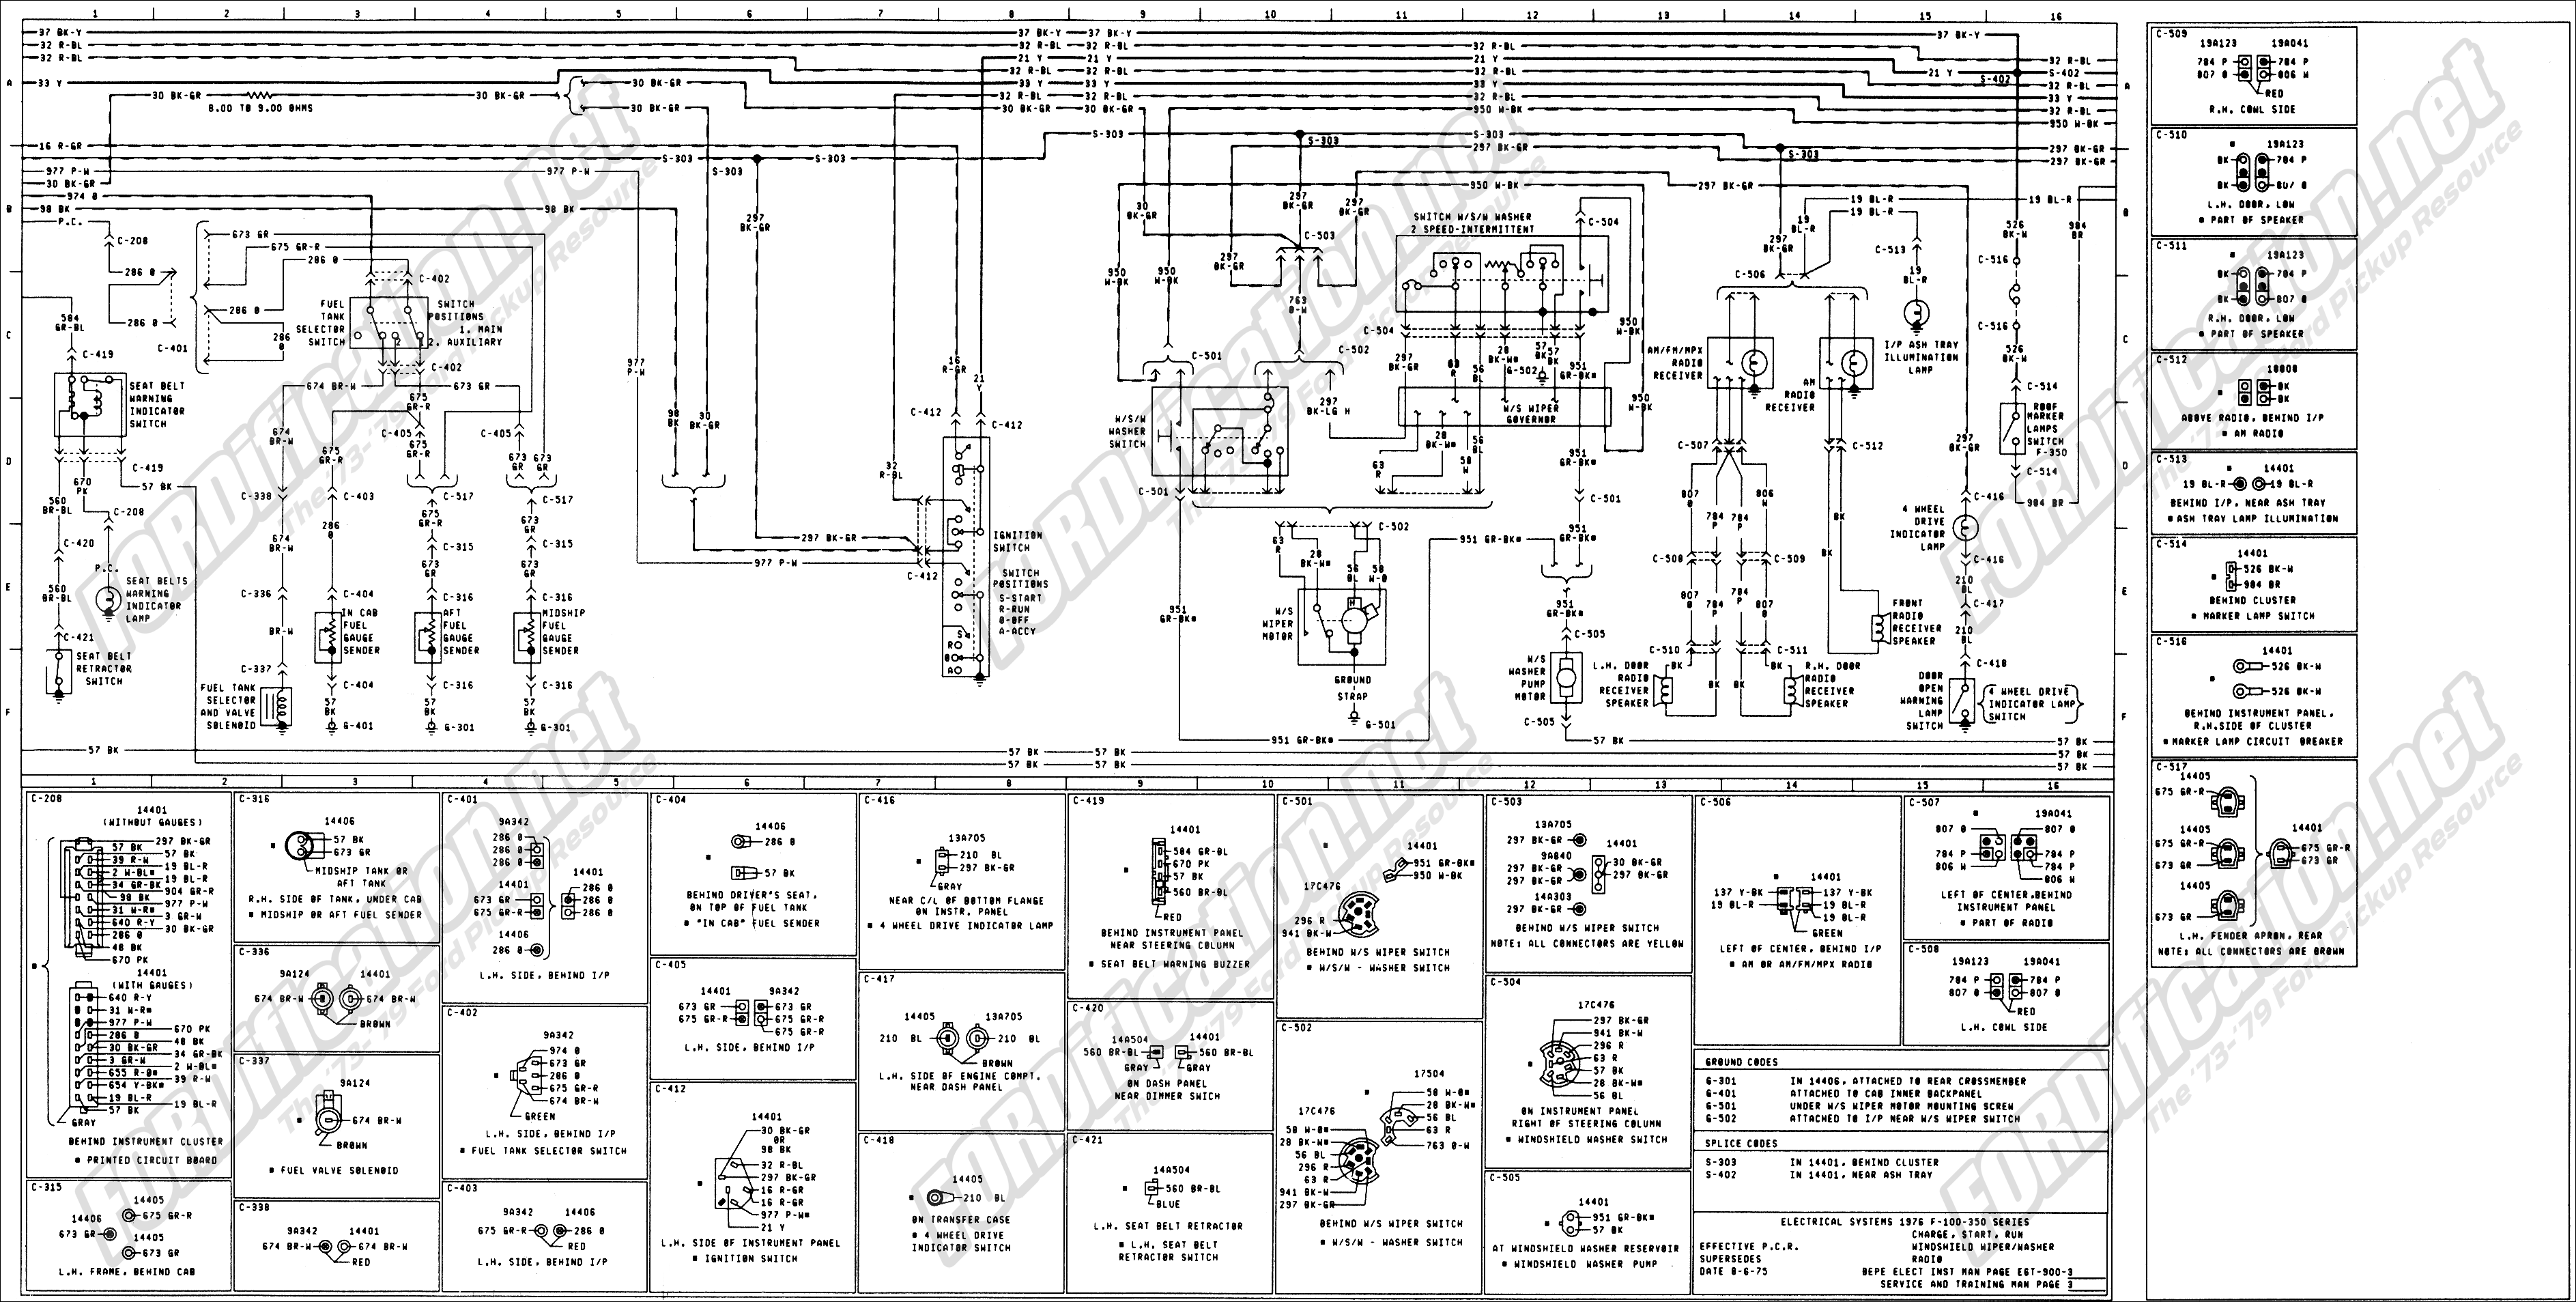 2001 Ford F650 F750 Wiring Electrical Diagrams Manual Ebay - Data SET •